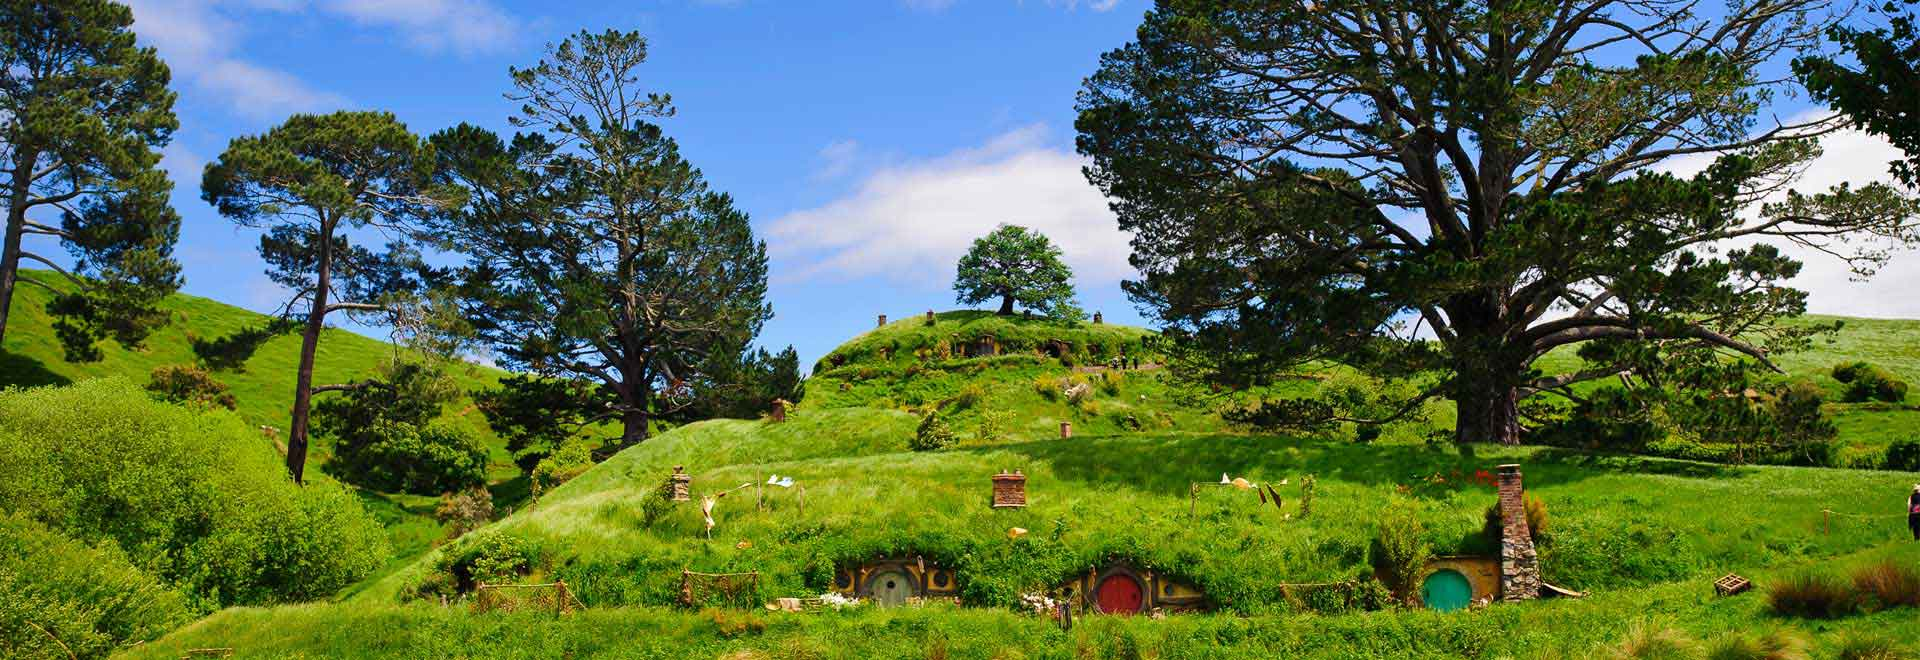 Hobbiton Movie Set Tours from Matamata or The Shires Rest